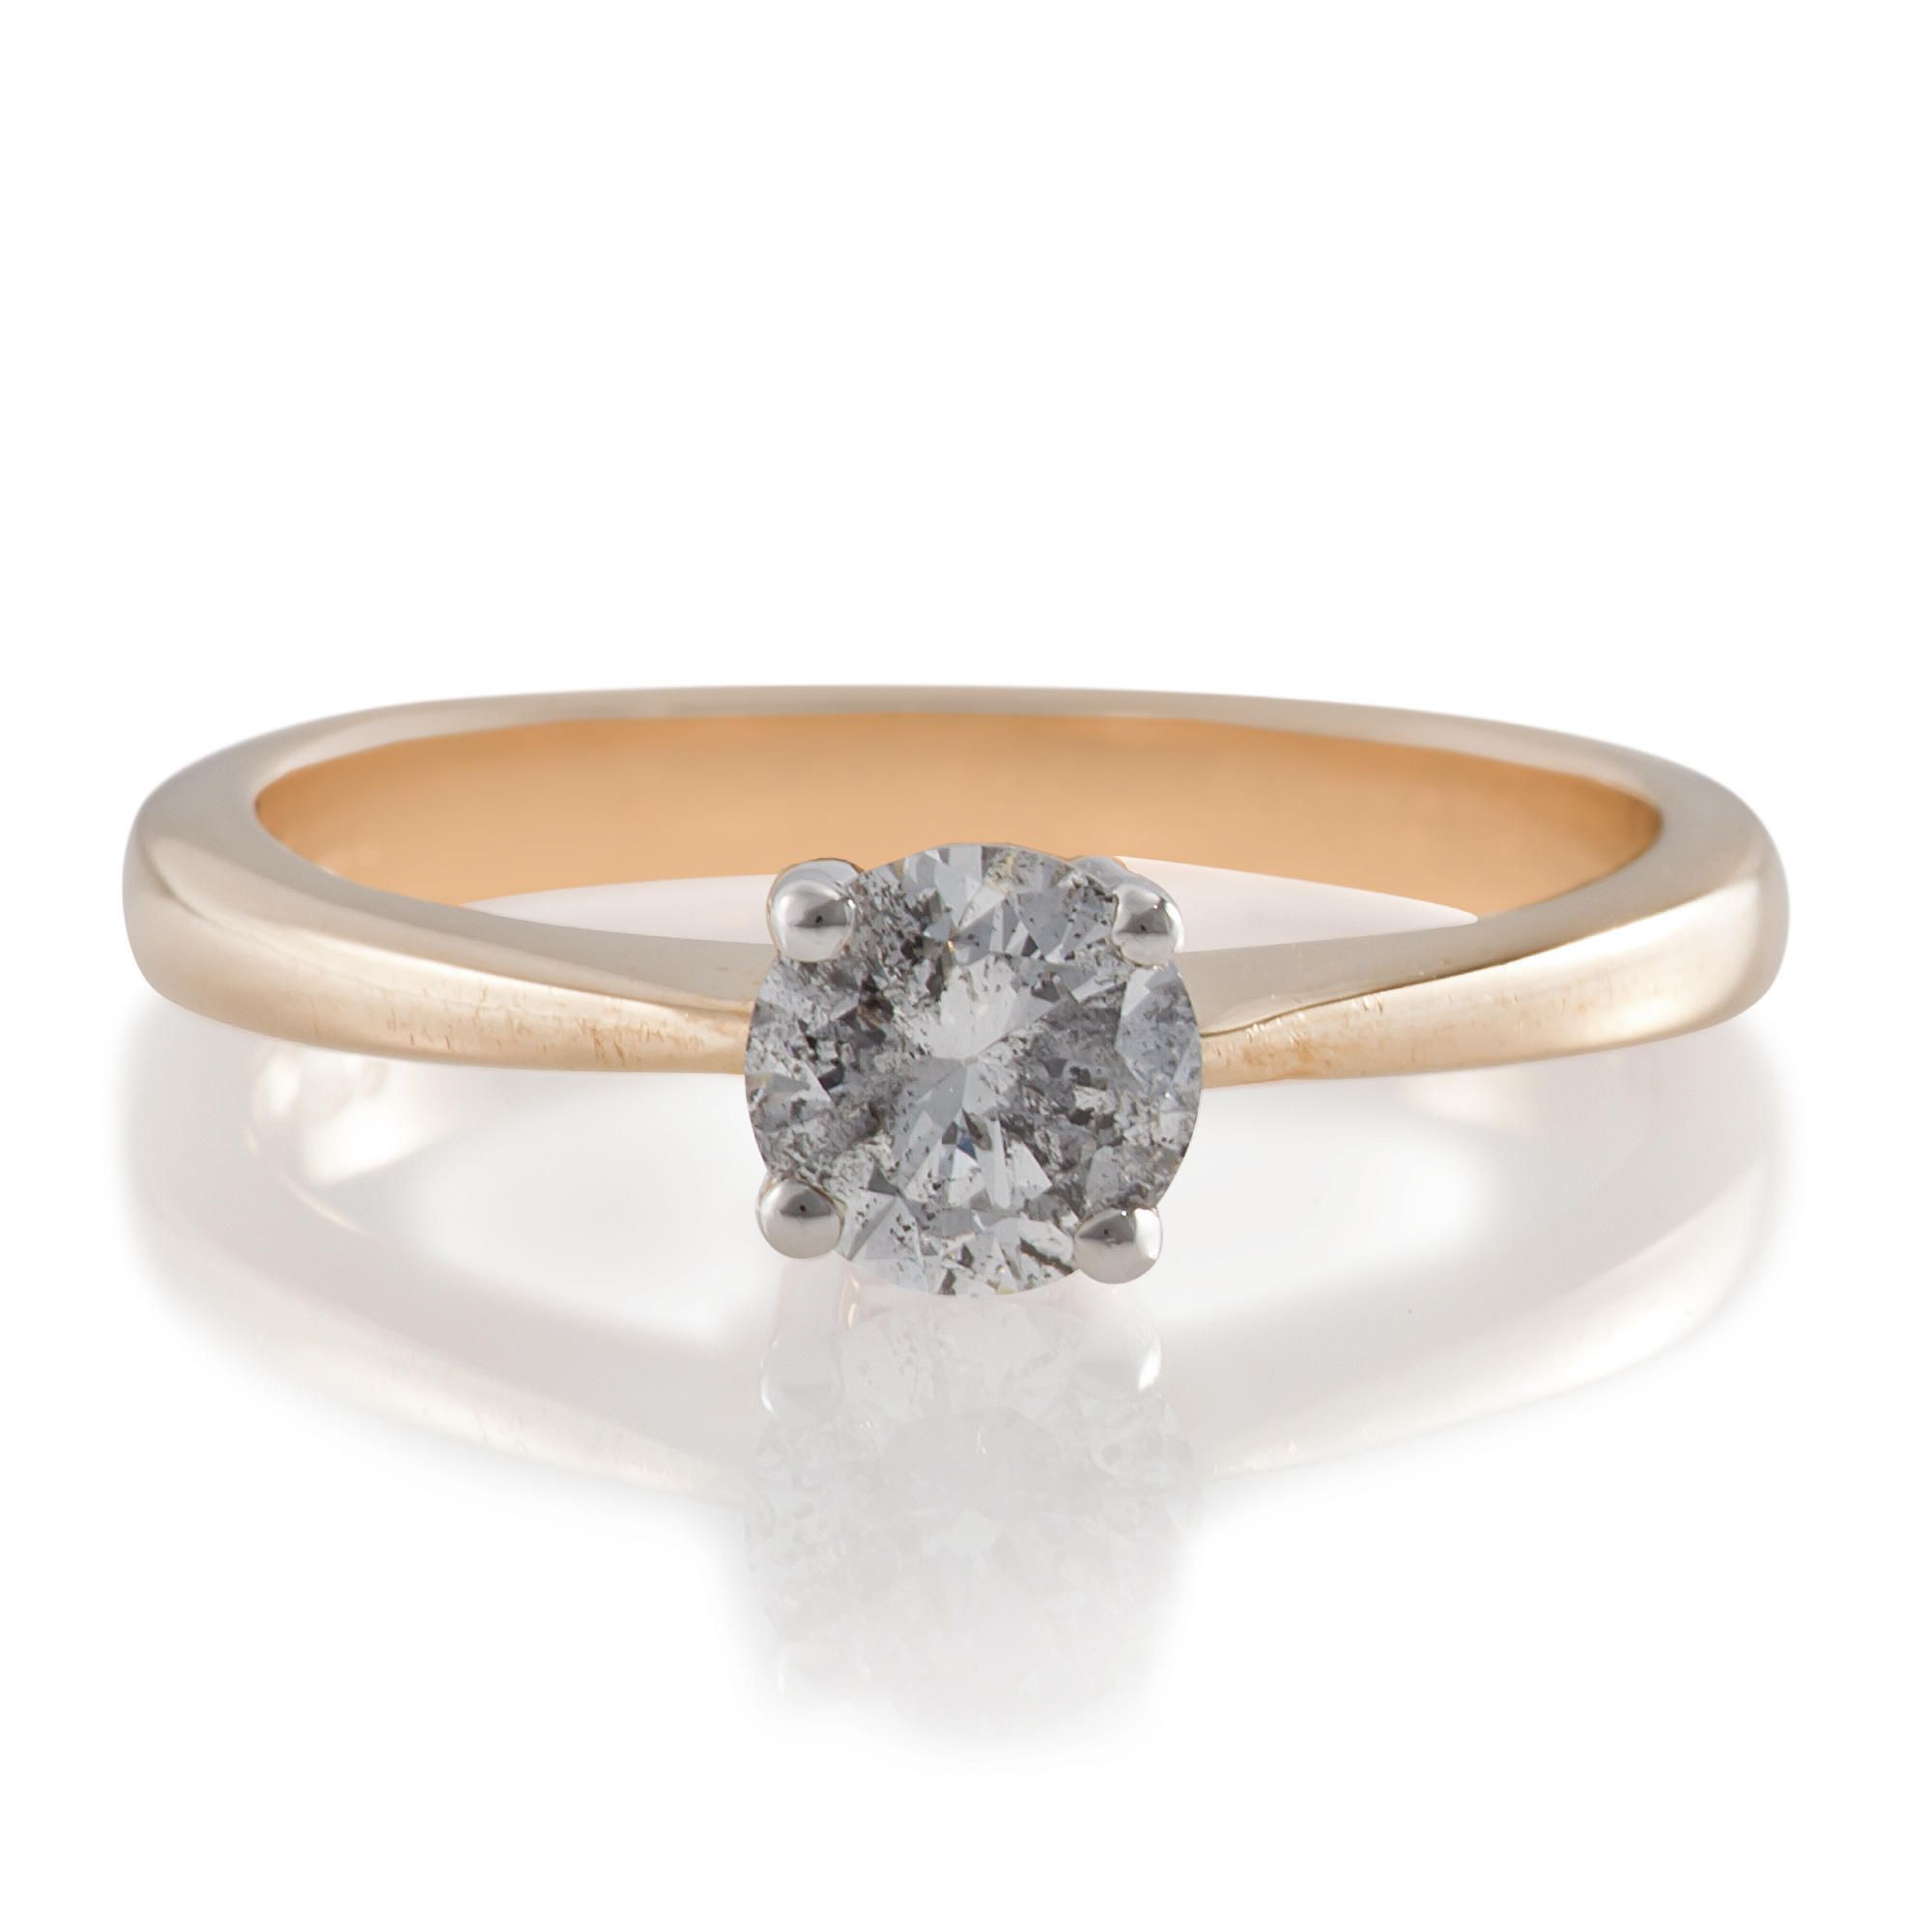 9ct Gold 50Pt Diamond Solitaire Ring, L at Tesco Direct